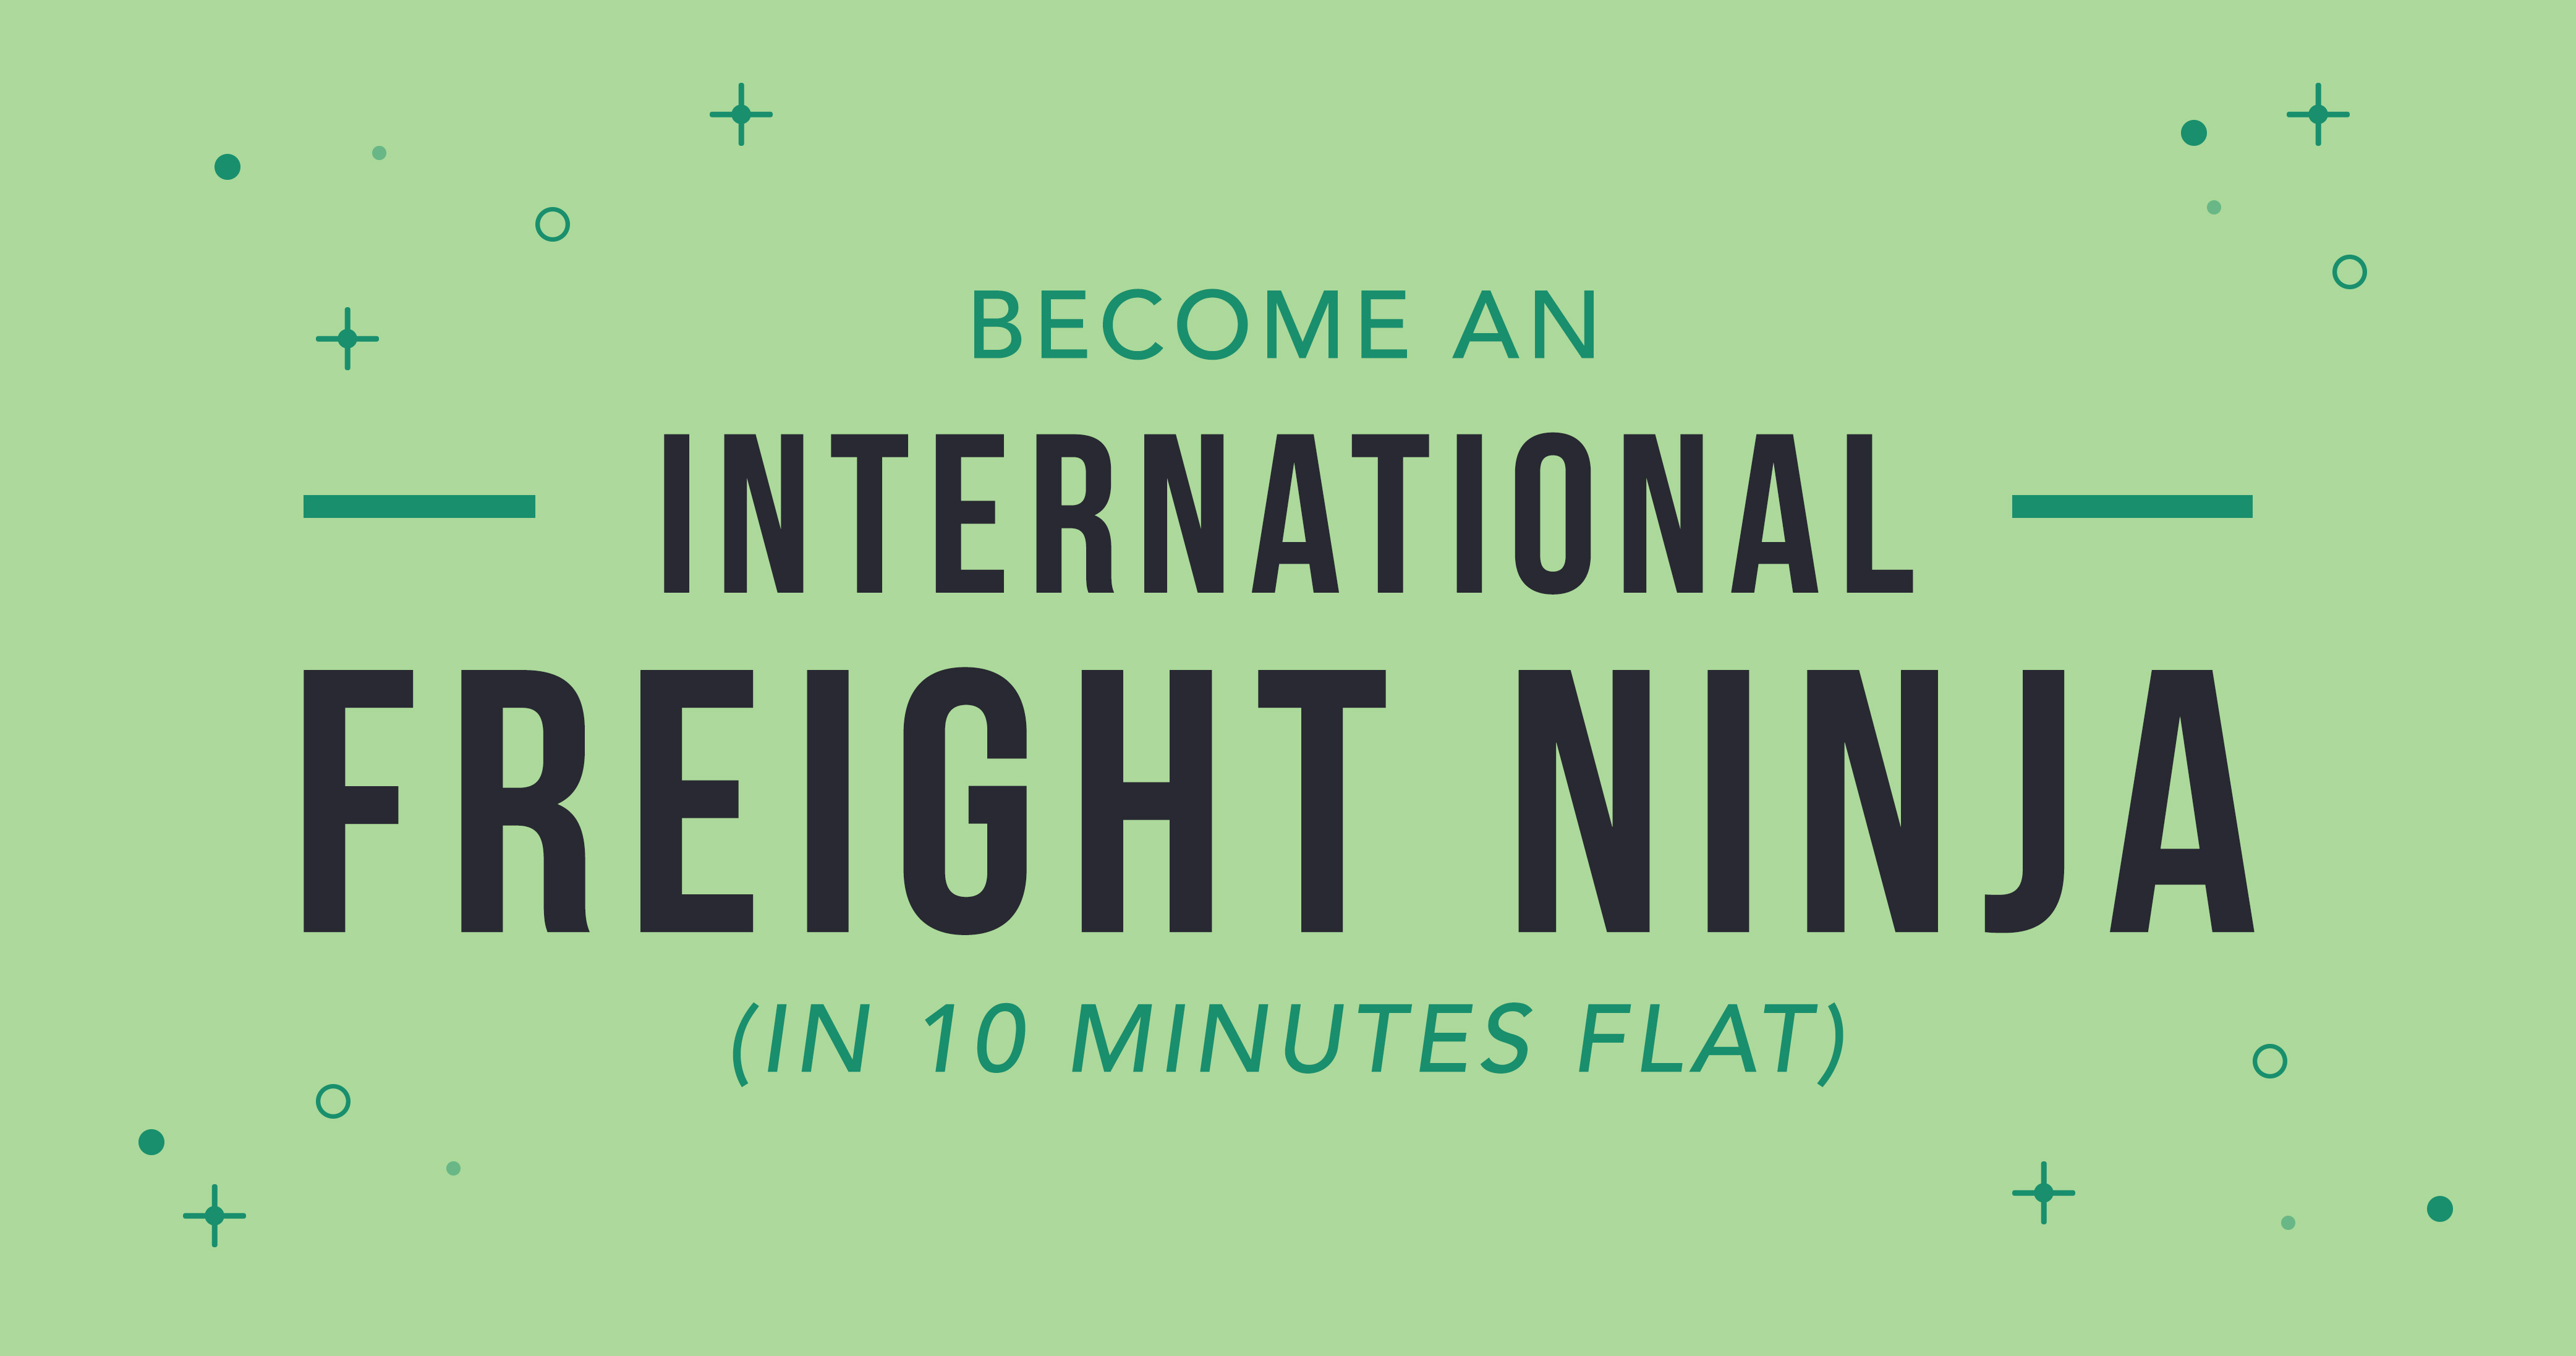 Become An International Freight Ninja (In 10 Minutes Flat)